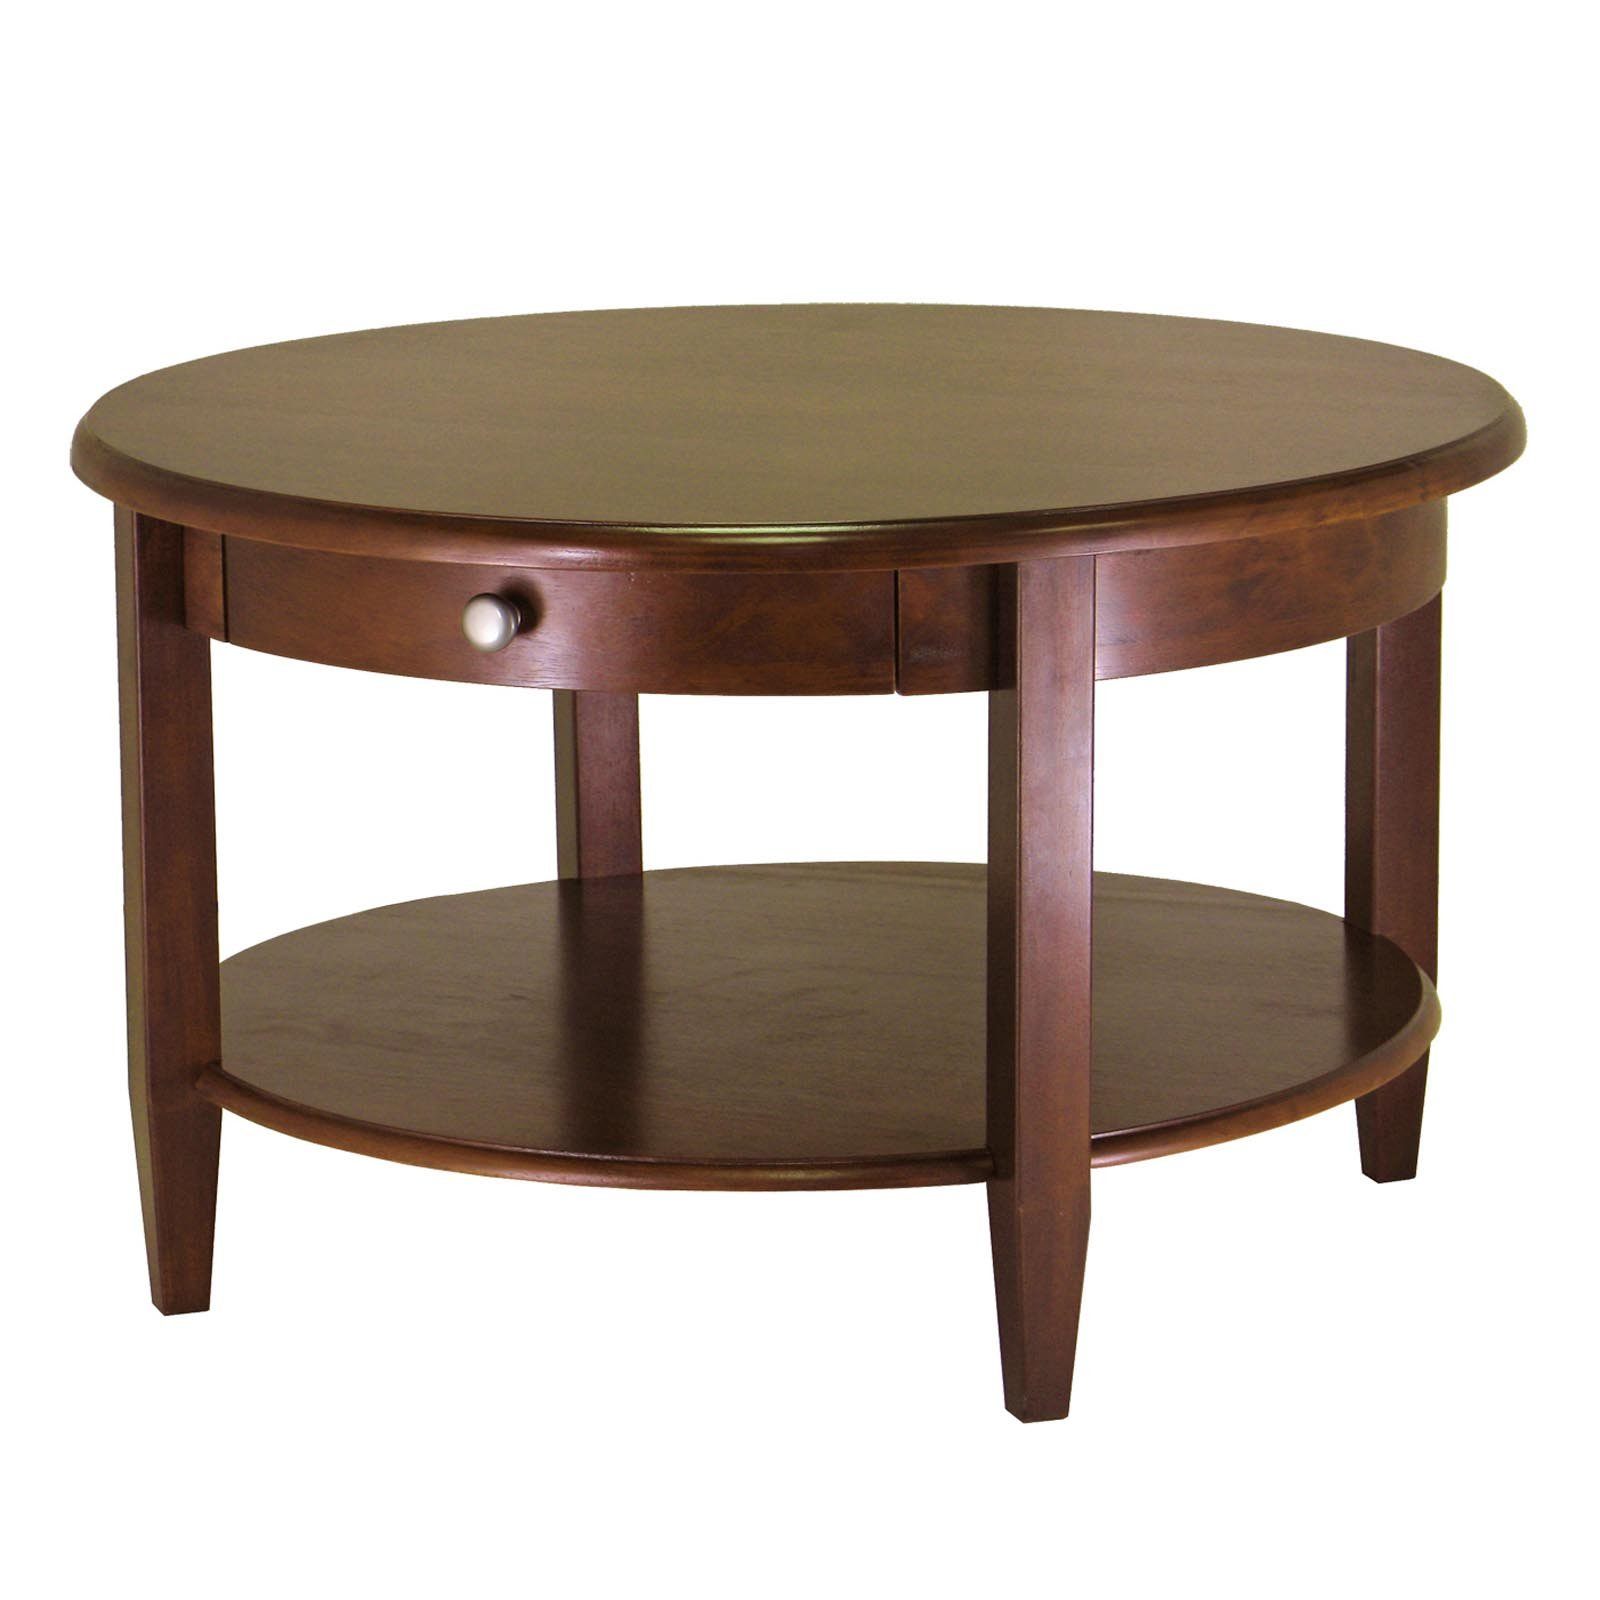 Newberry-Round-Coffee-Table-traditional-coffee-tables-small-round-coffee-table (Image 8 of 10)